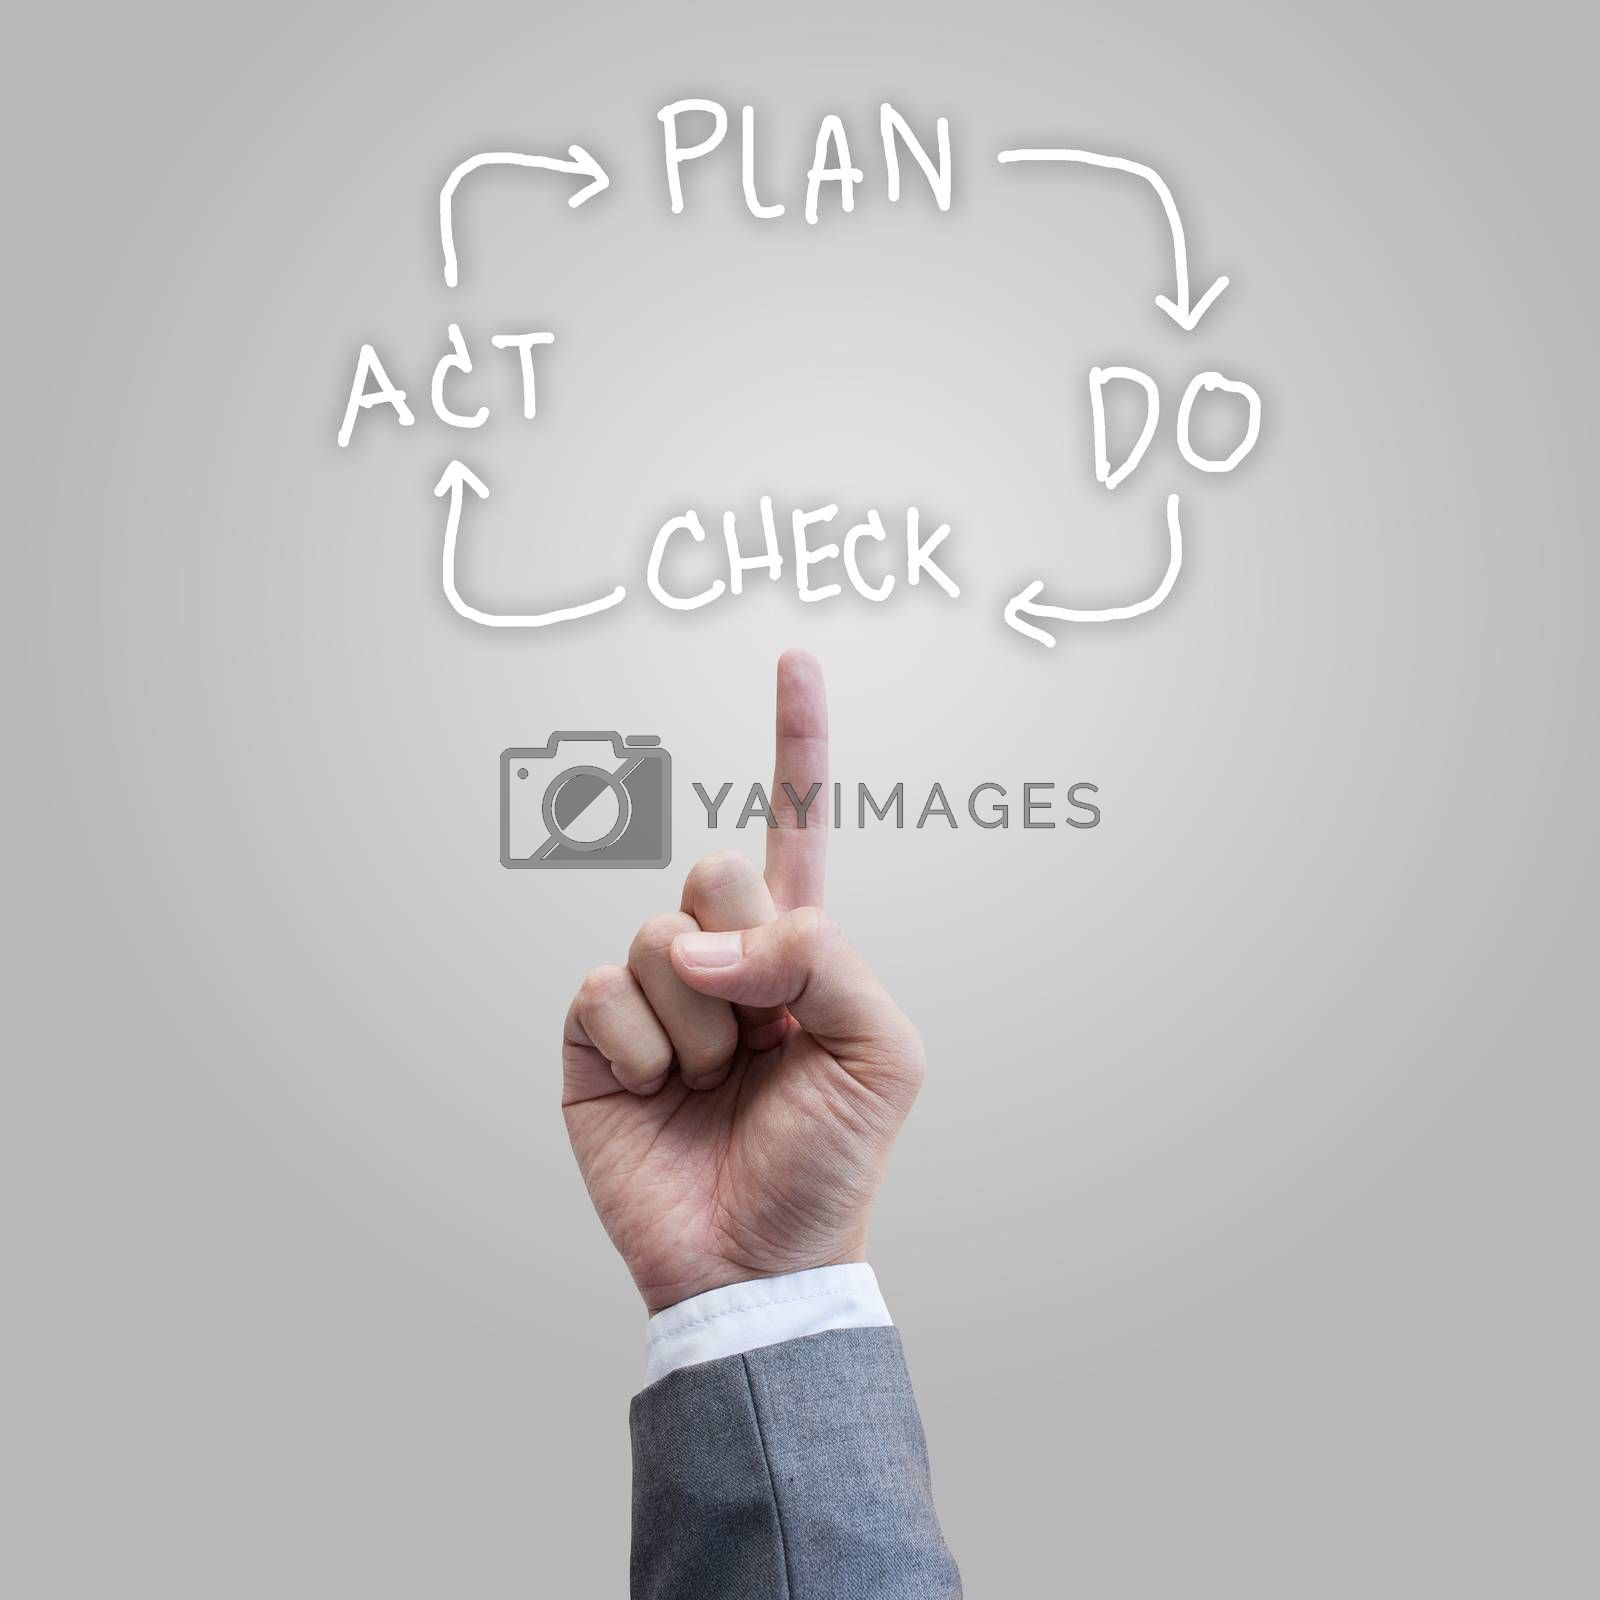 Plan Do Check Act software developtment by 2nix